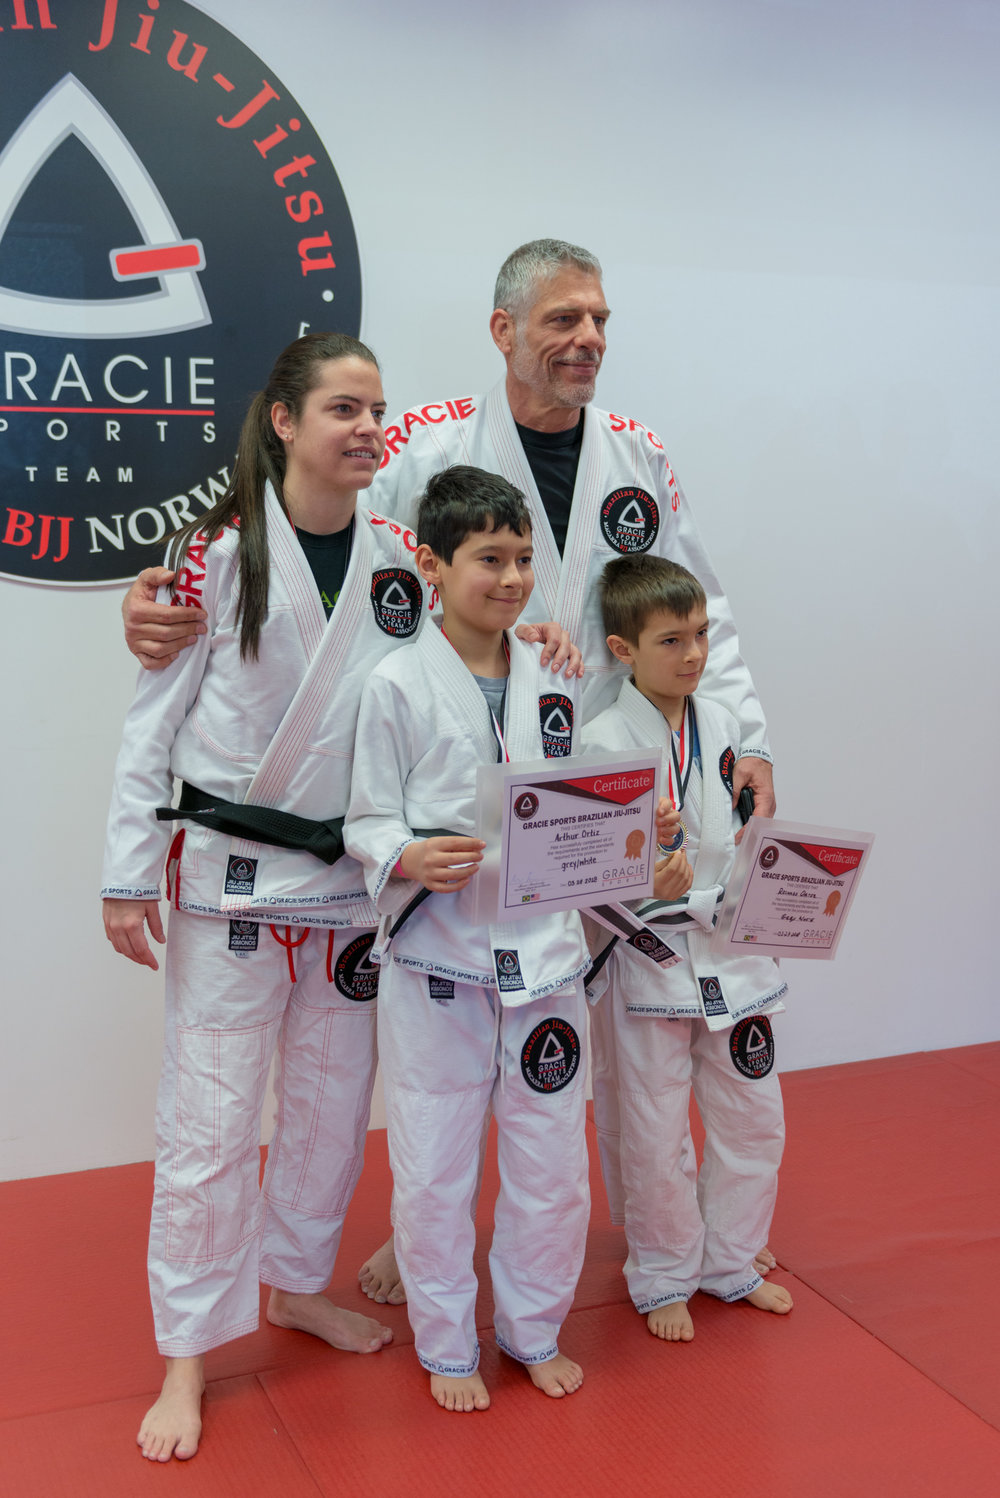 Gracie-Sports-Kids-160.jpg